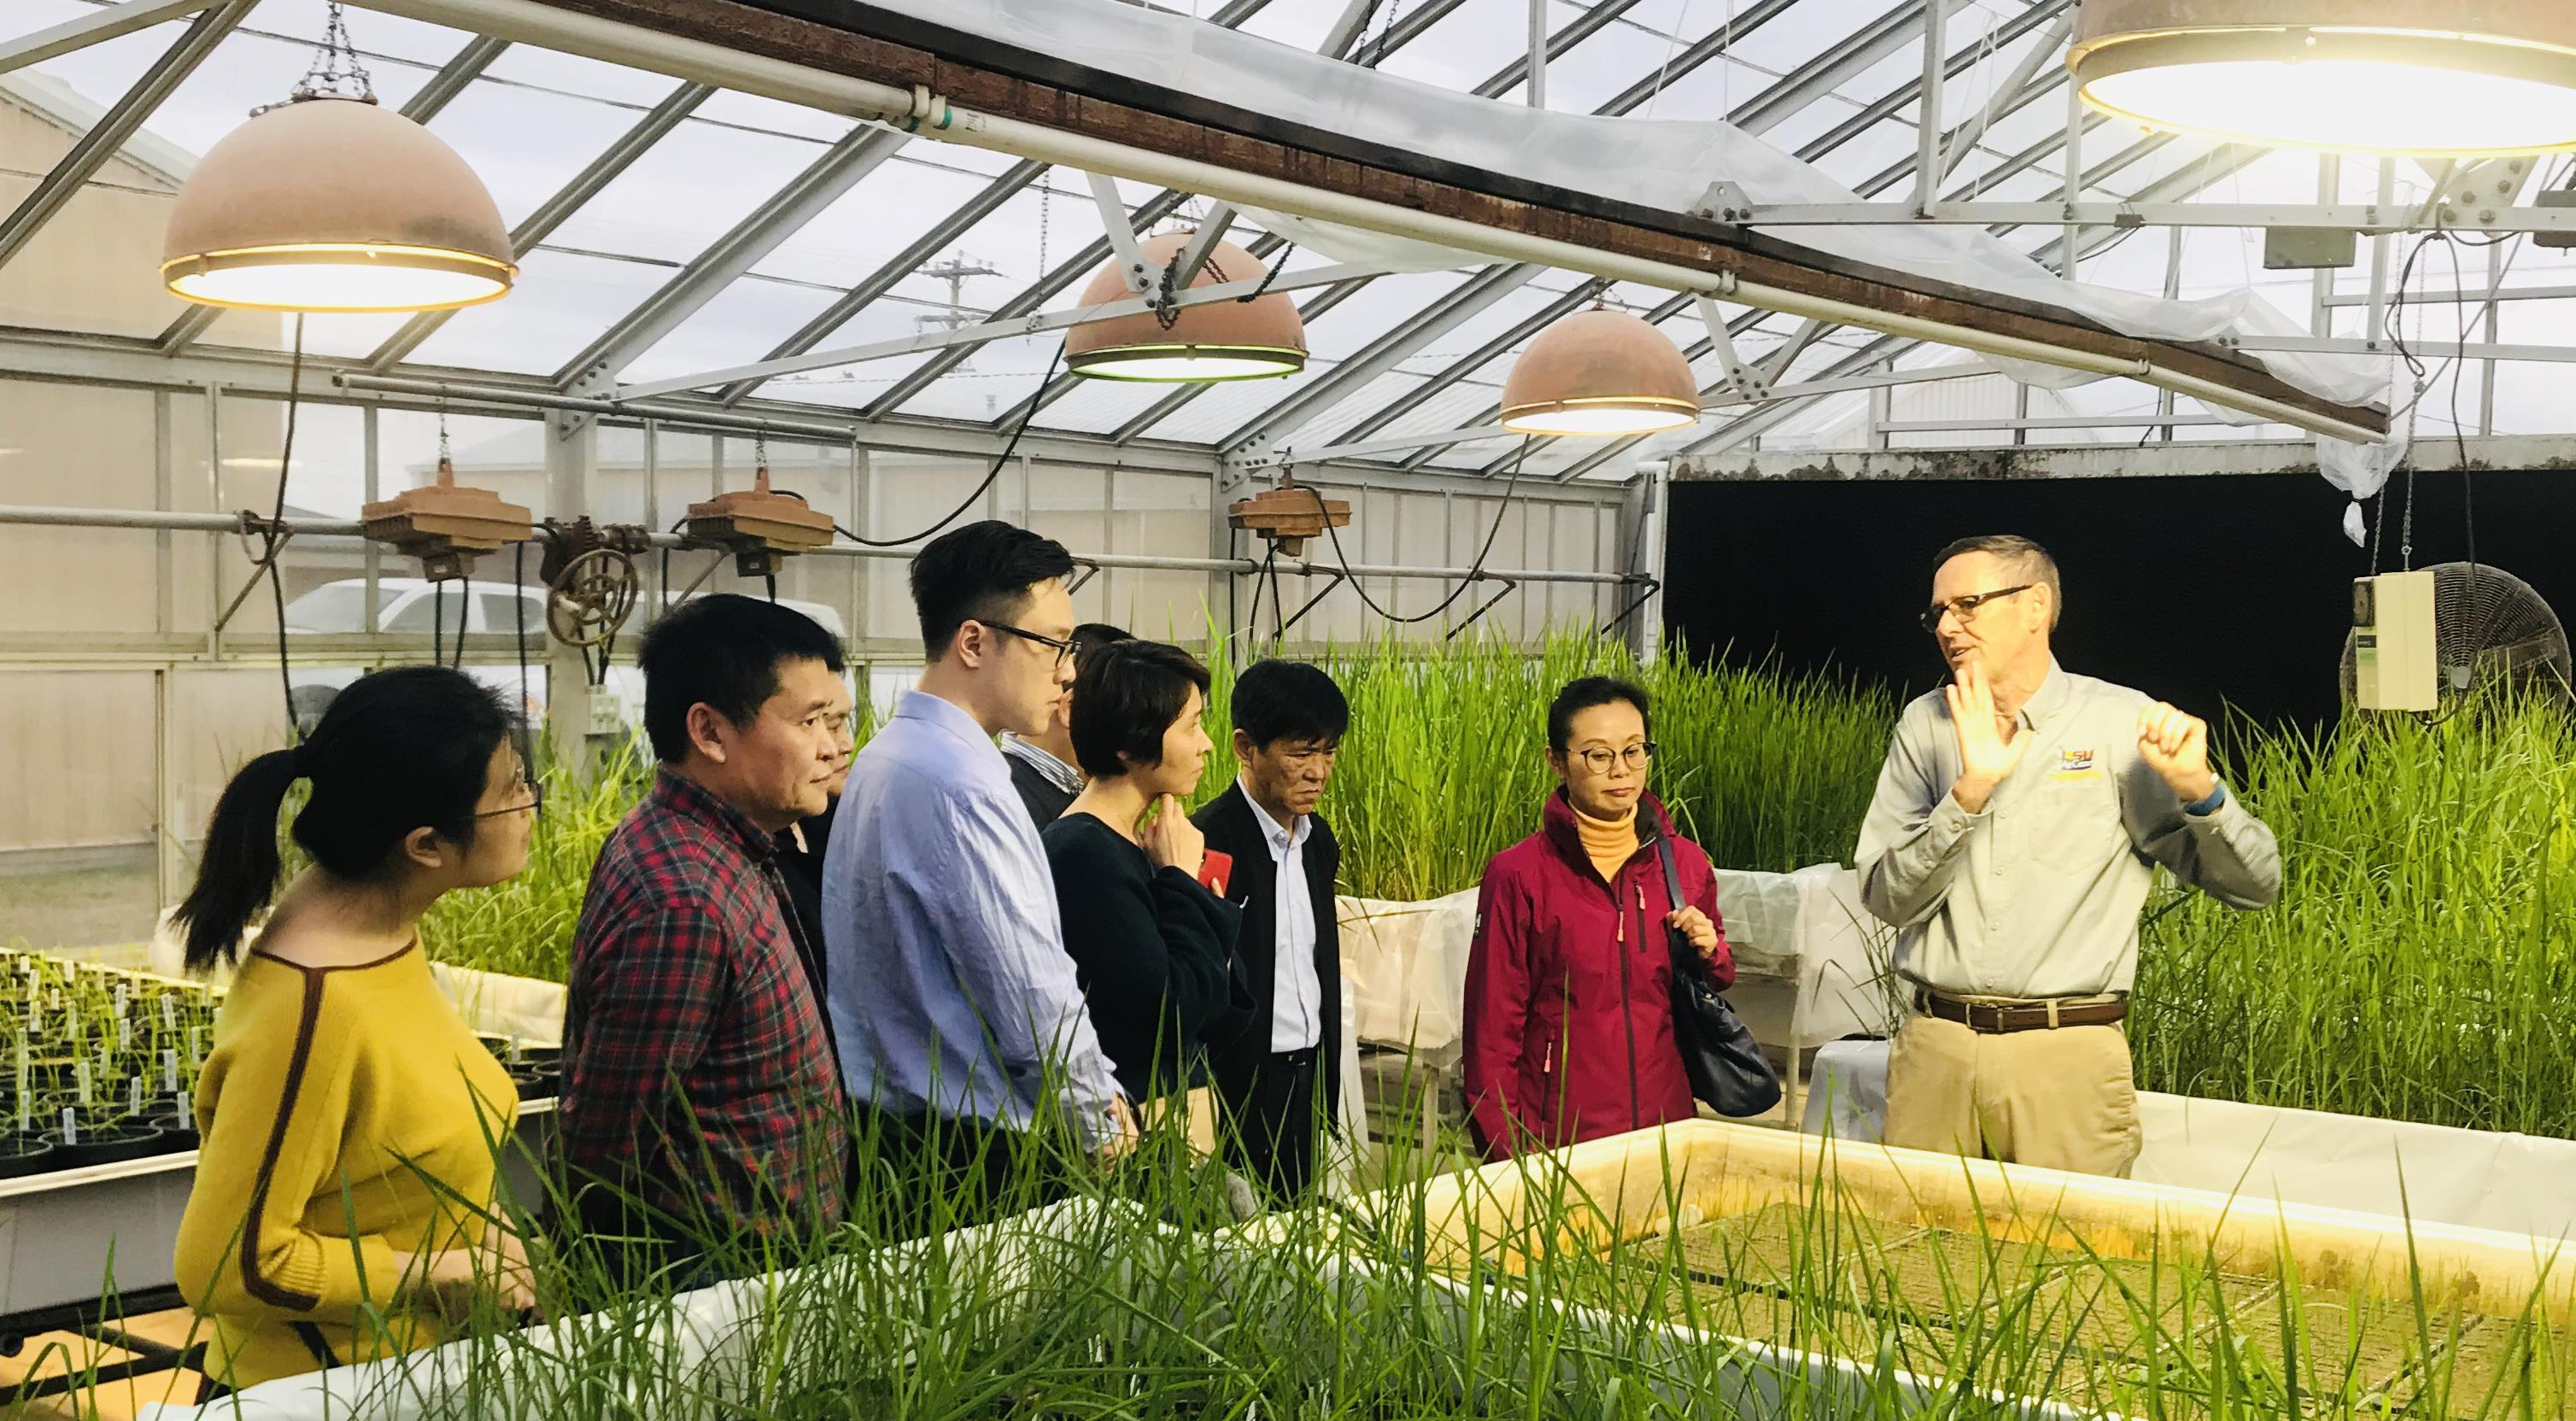 Group of people standing among rice research plots in greenhouse